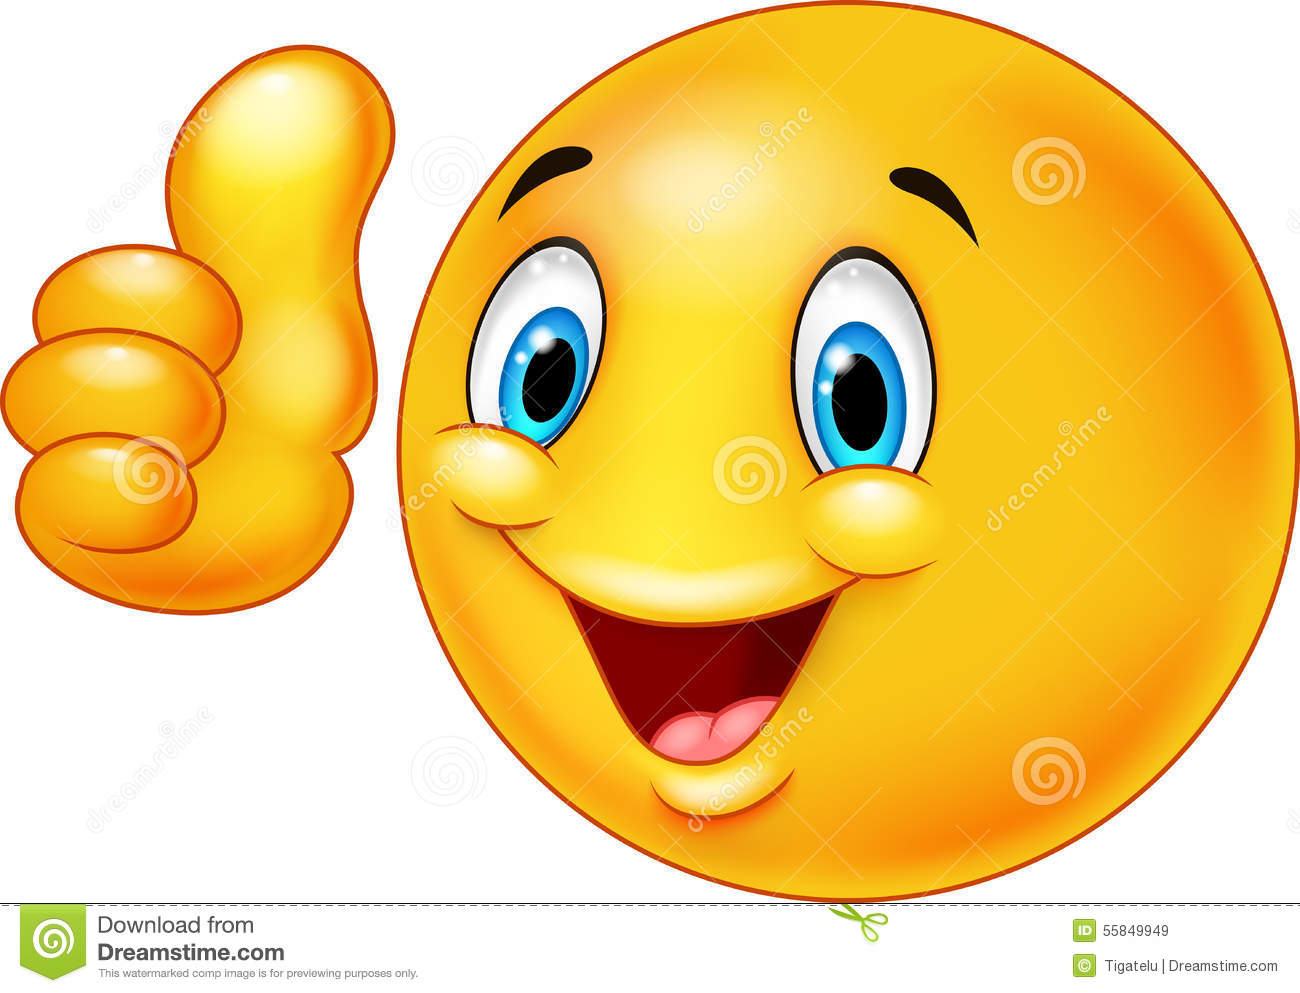 Happy Smiley Emoticon Cartoon Giving Thumbs Up Stock Illustration ...